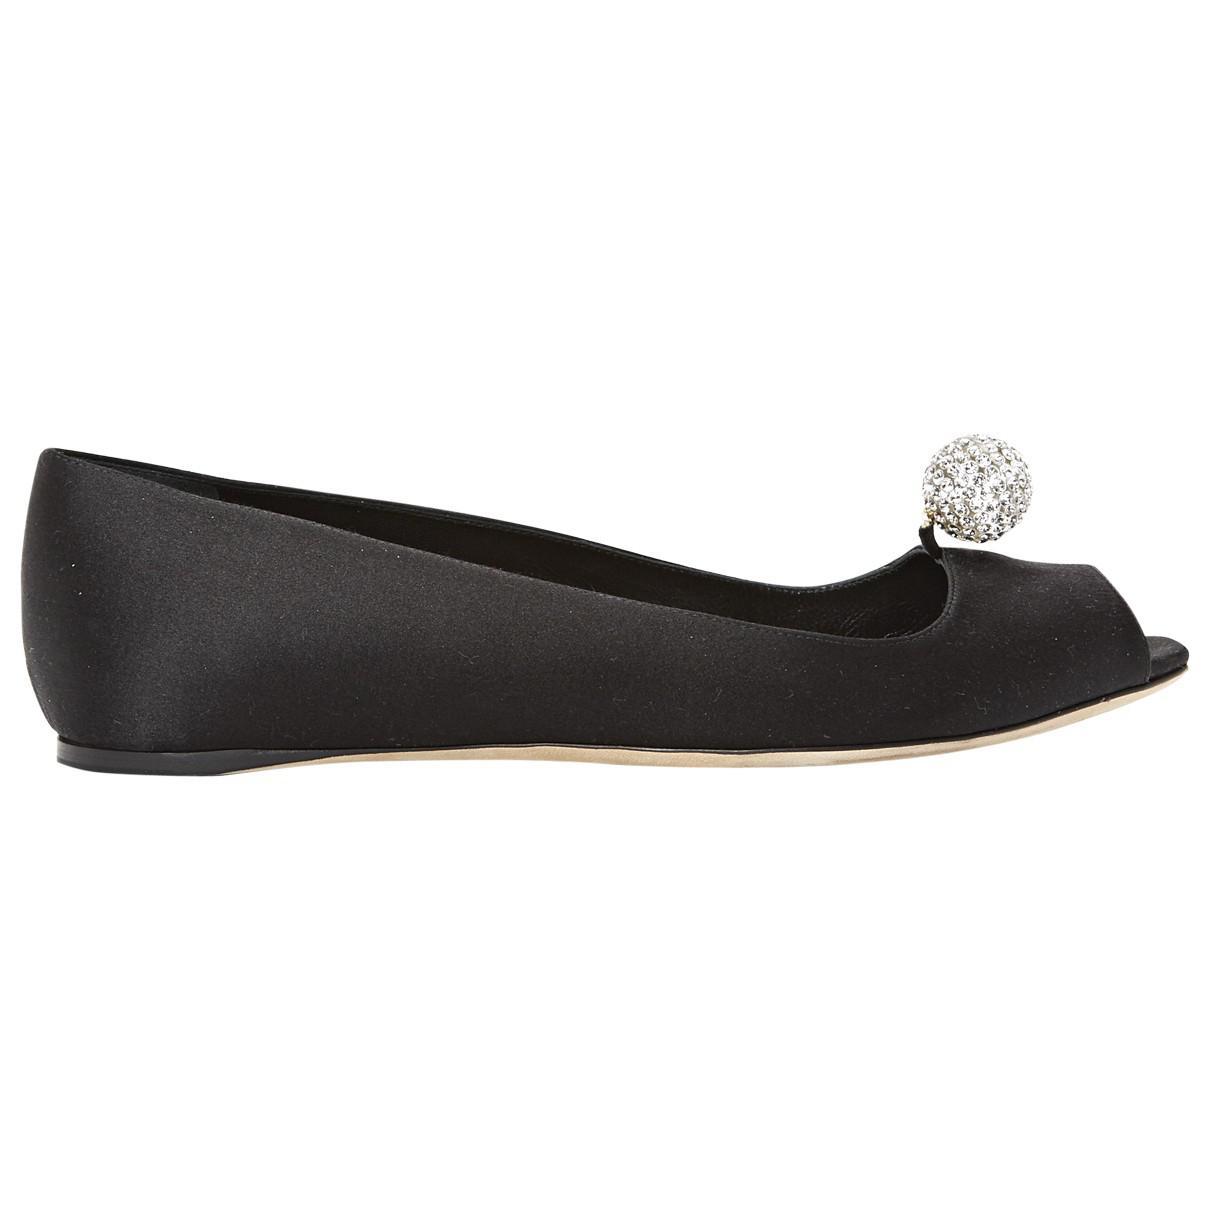 Pre-owned - Leather flats Dior NlcHWGWv